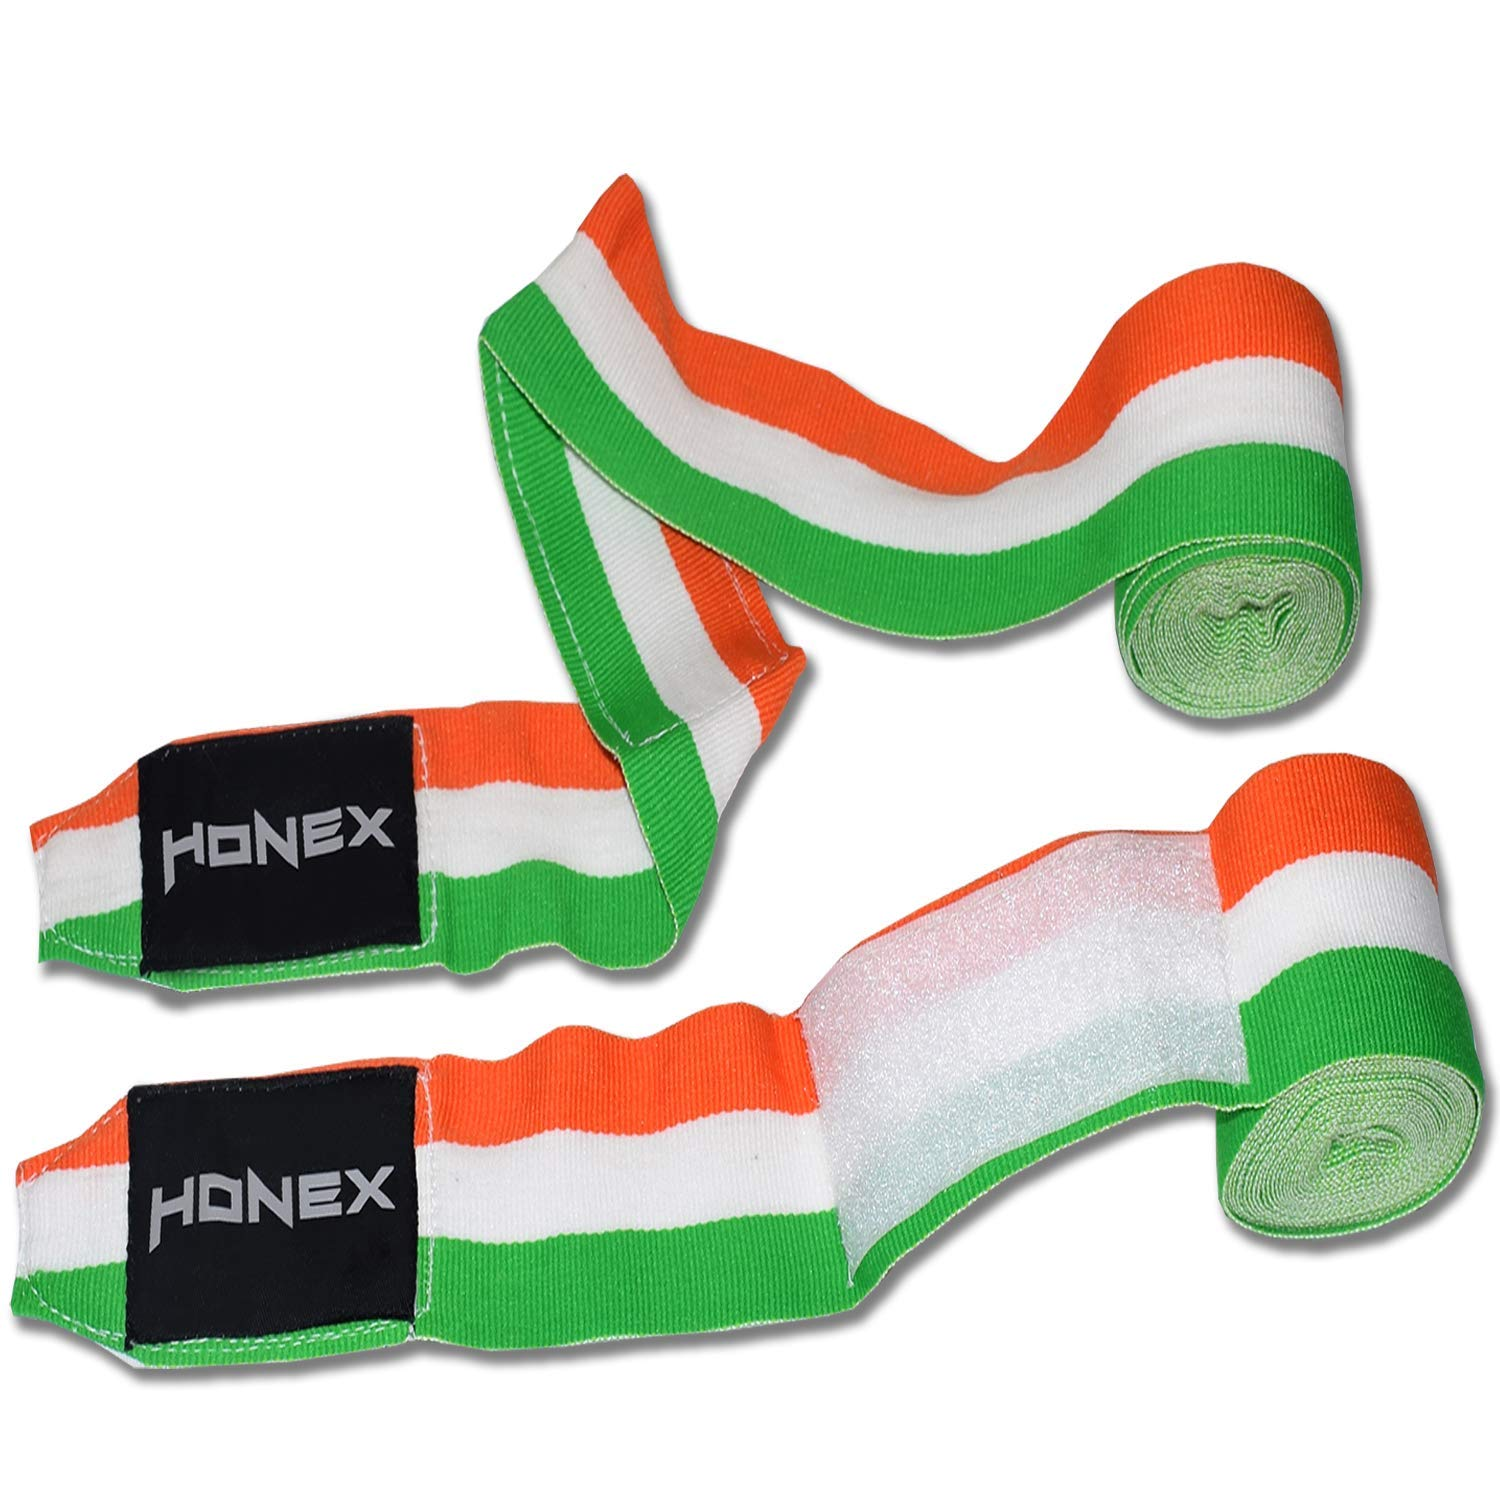 4m 1 Pair Pack Germany Flag Pattern Premium Quality Hand Wraps for Boxing and MMA Ultra Soft Durable Quality Bandages for Men /& Women Honex Mexican Style Stretchable Boxing Hand Wraps